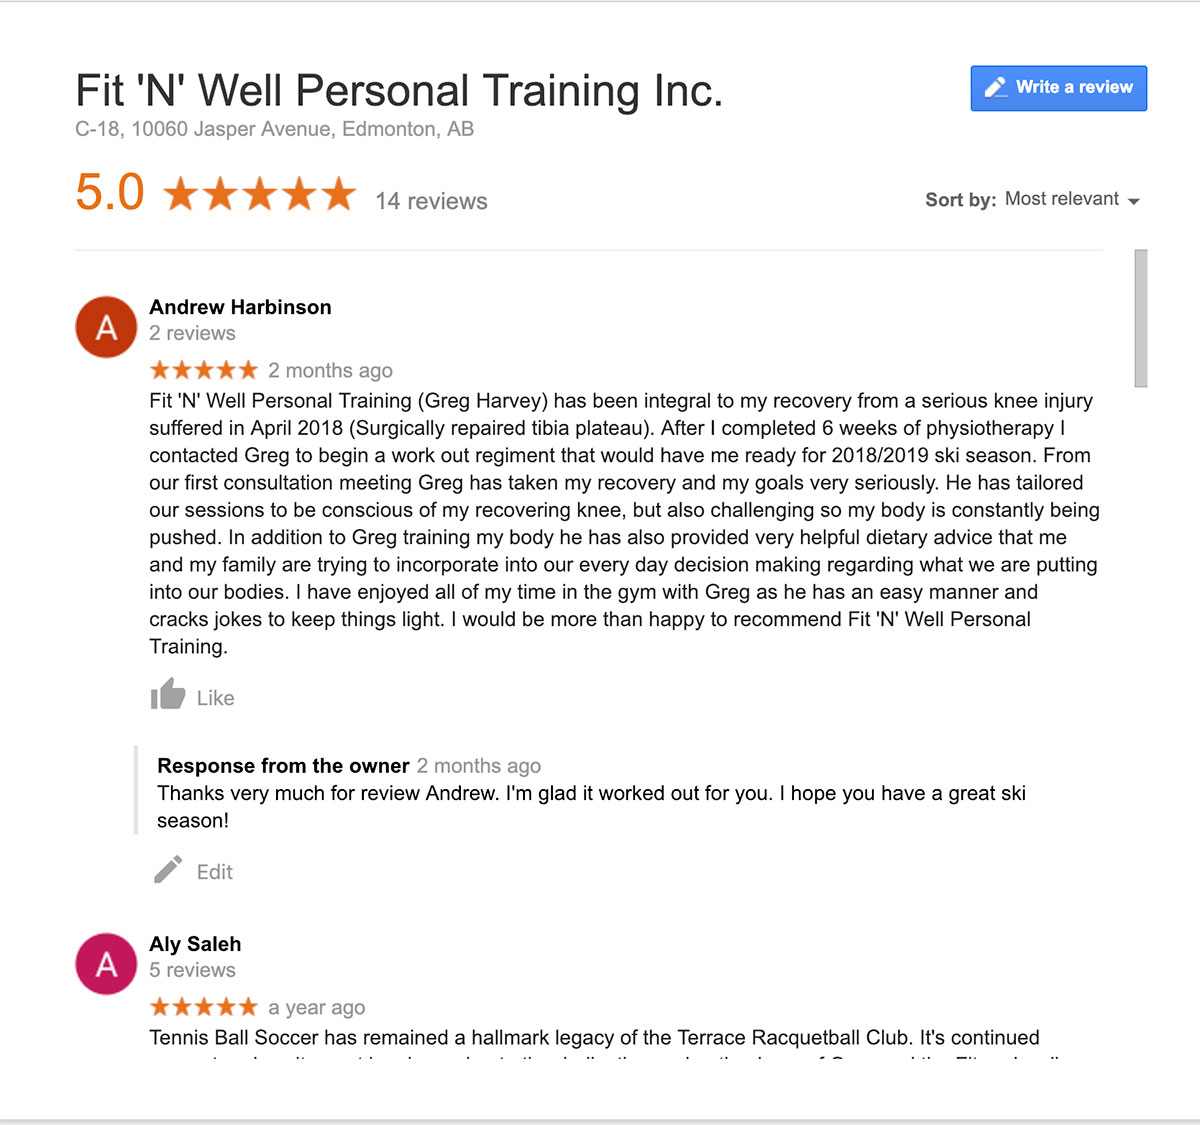 personal trainer client review by Andrew Harbinson for Fit 'N' Well